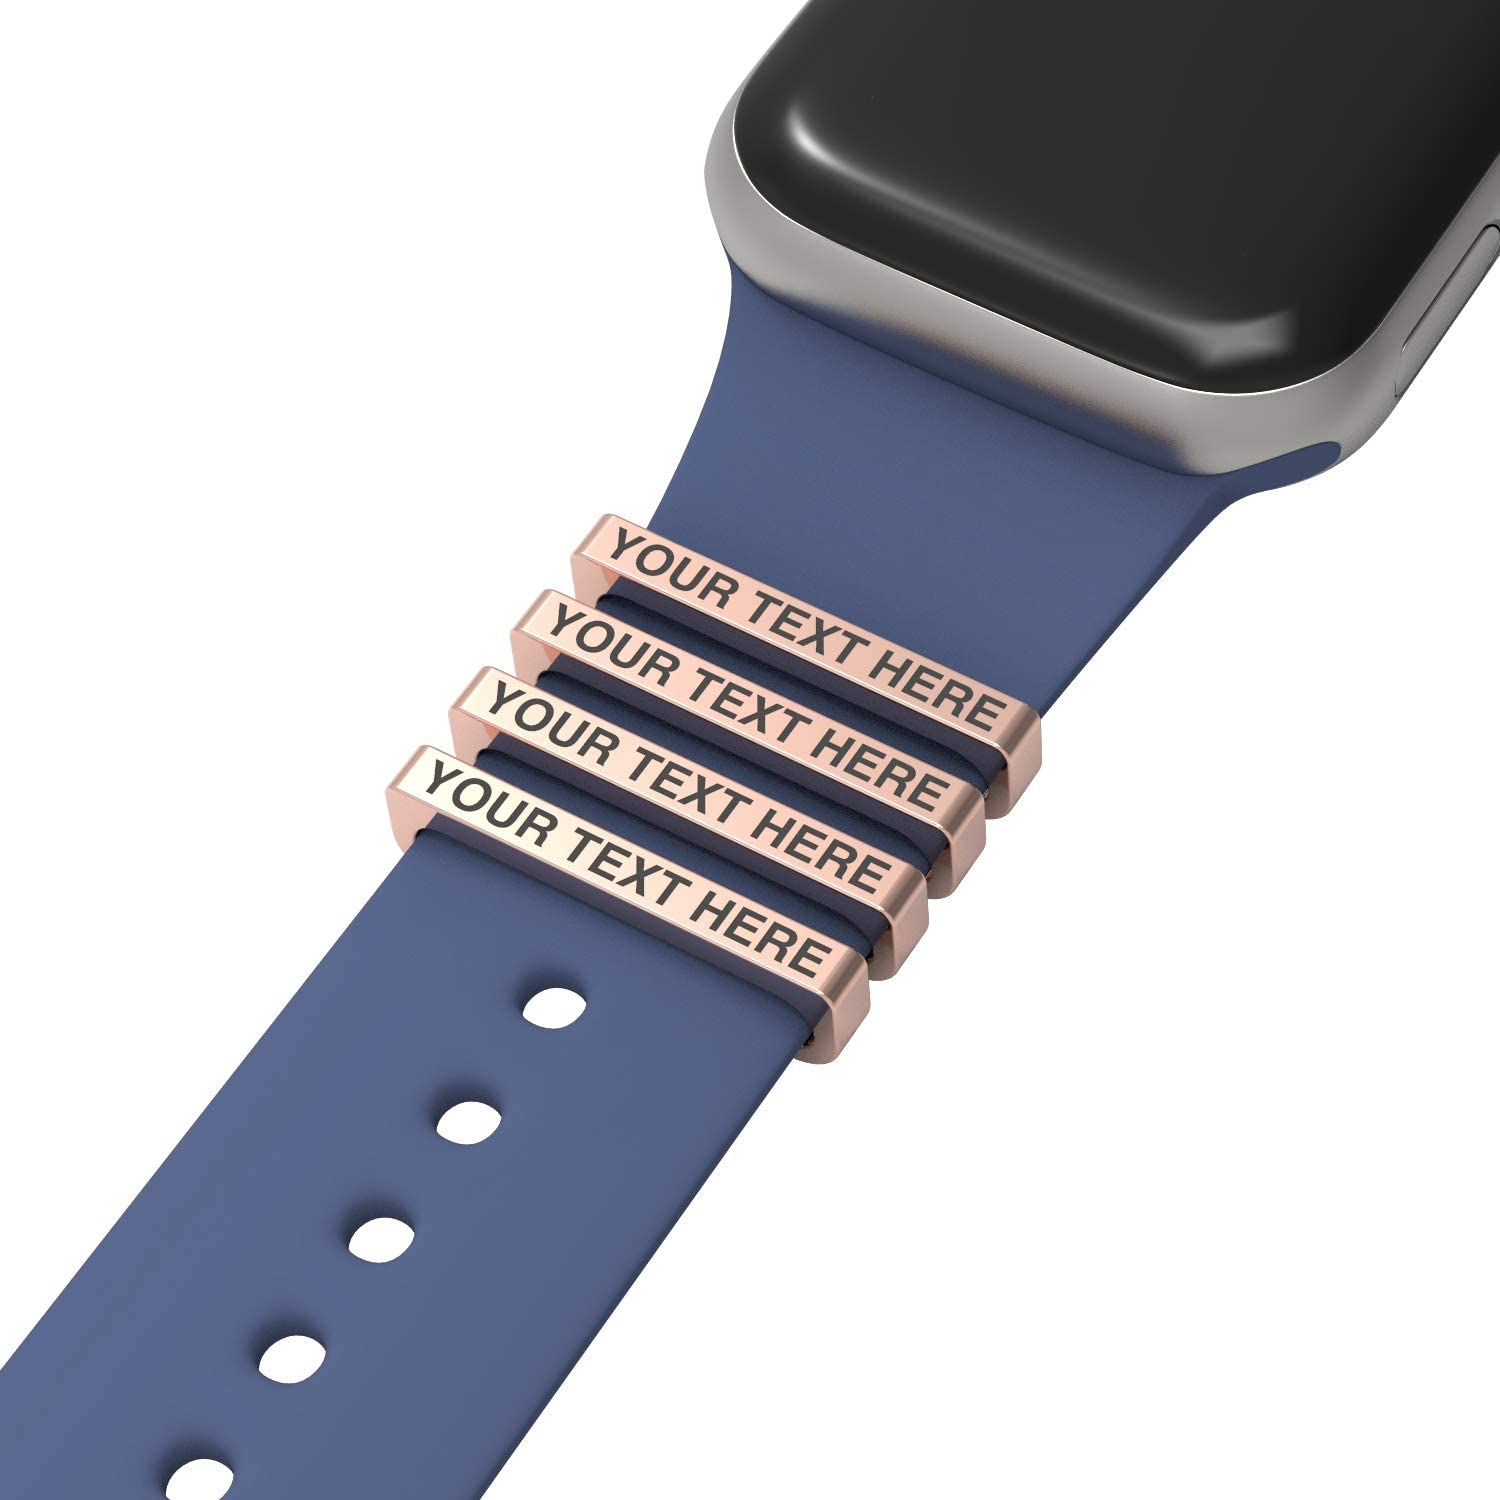 Callancity 4pcs/Sets Watch Band Charms Decorative Ring Loops Compatible for Smart Watch Band Series 5/4/3/2/1